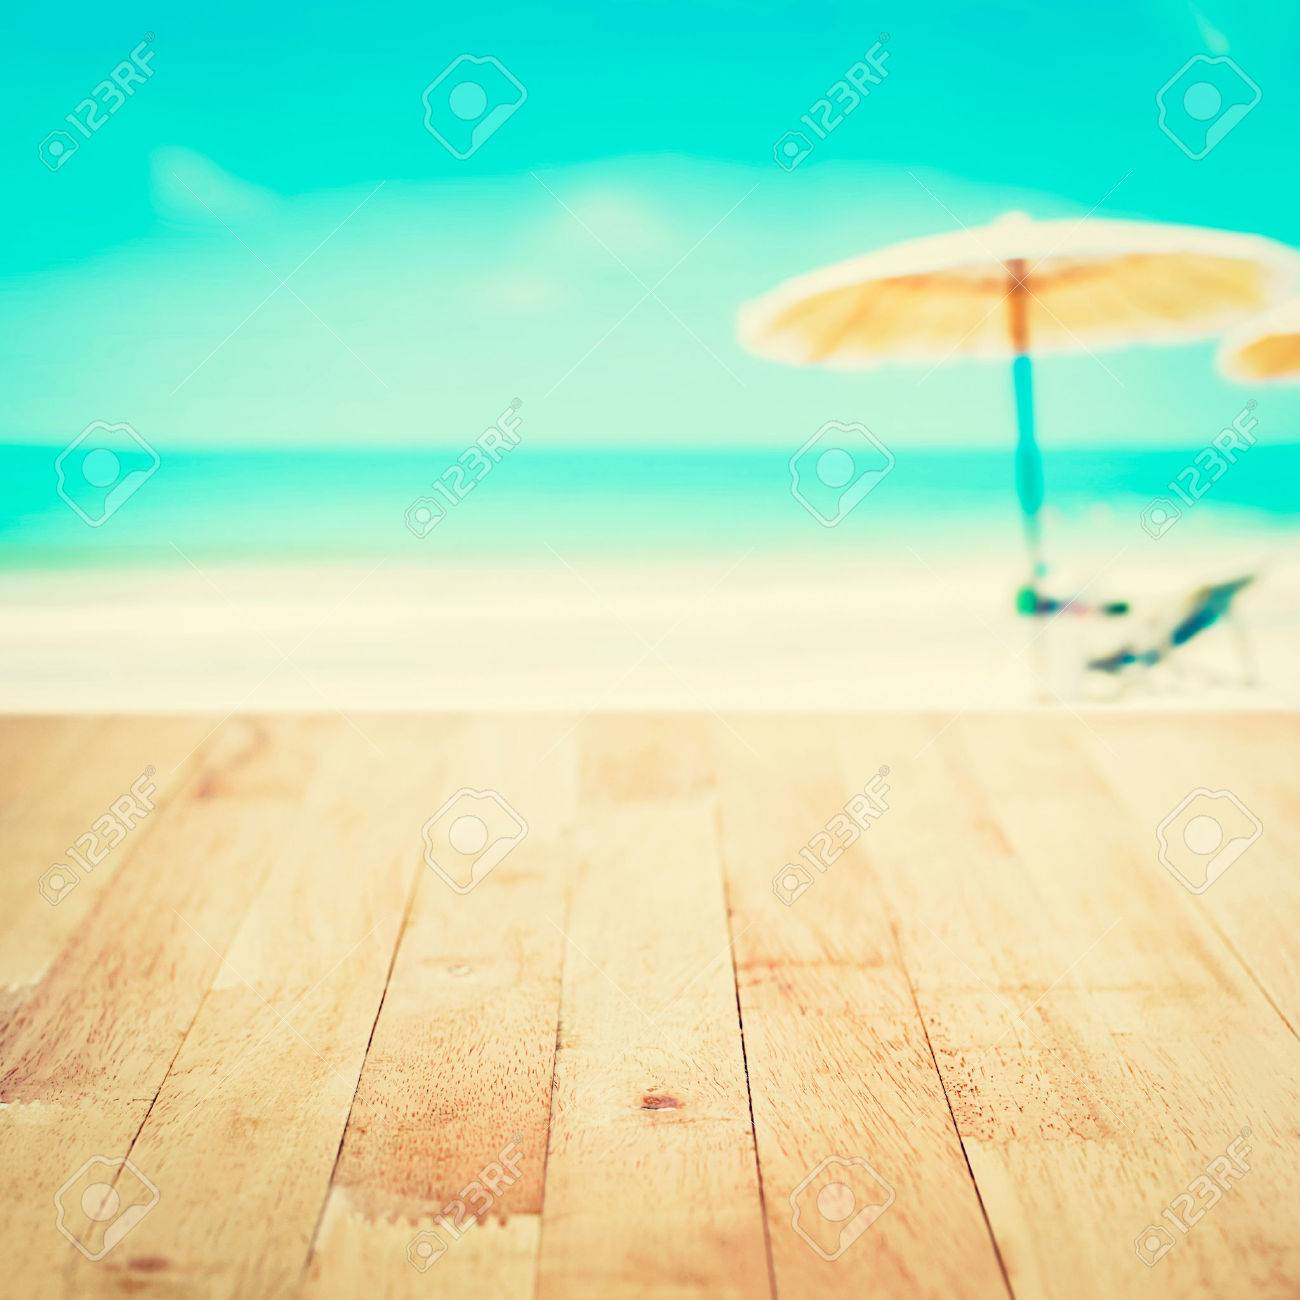 Wood Table Top On Blurred White Sand Beach Background, Vintage Tone   Can  Be Used